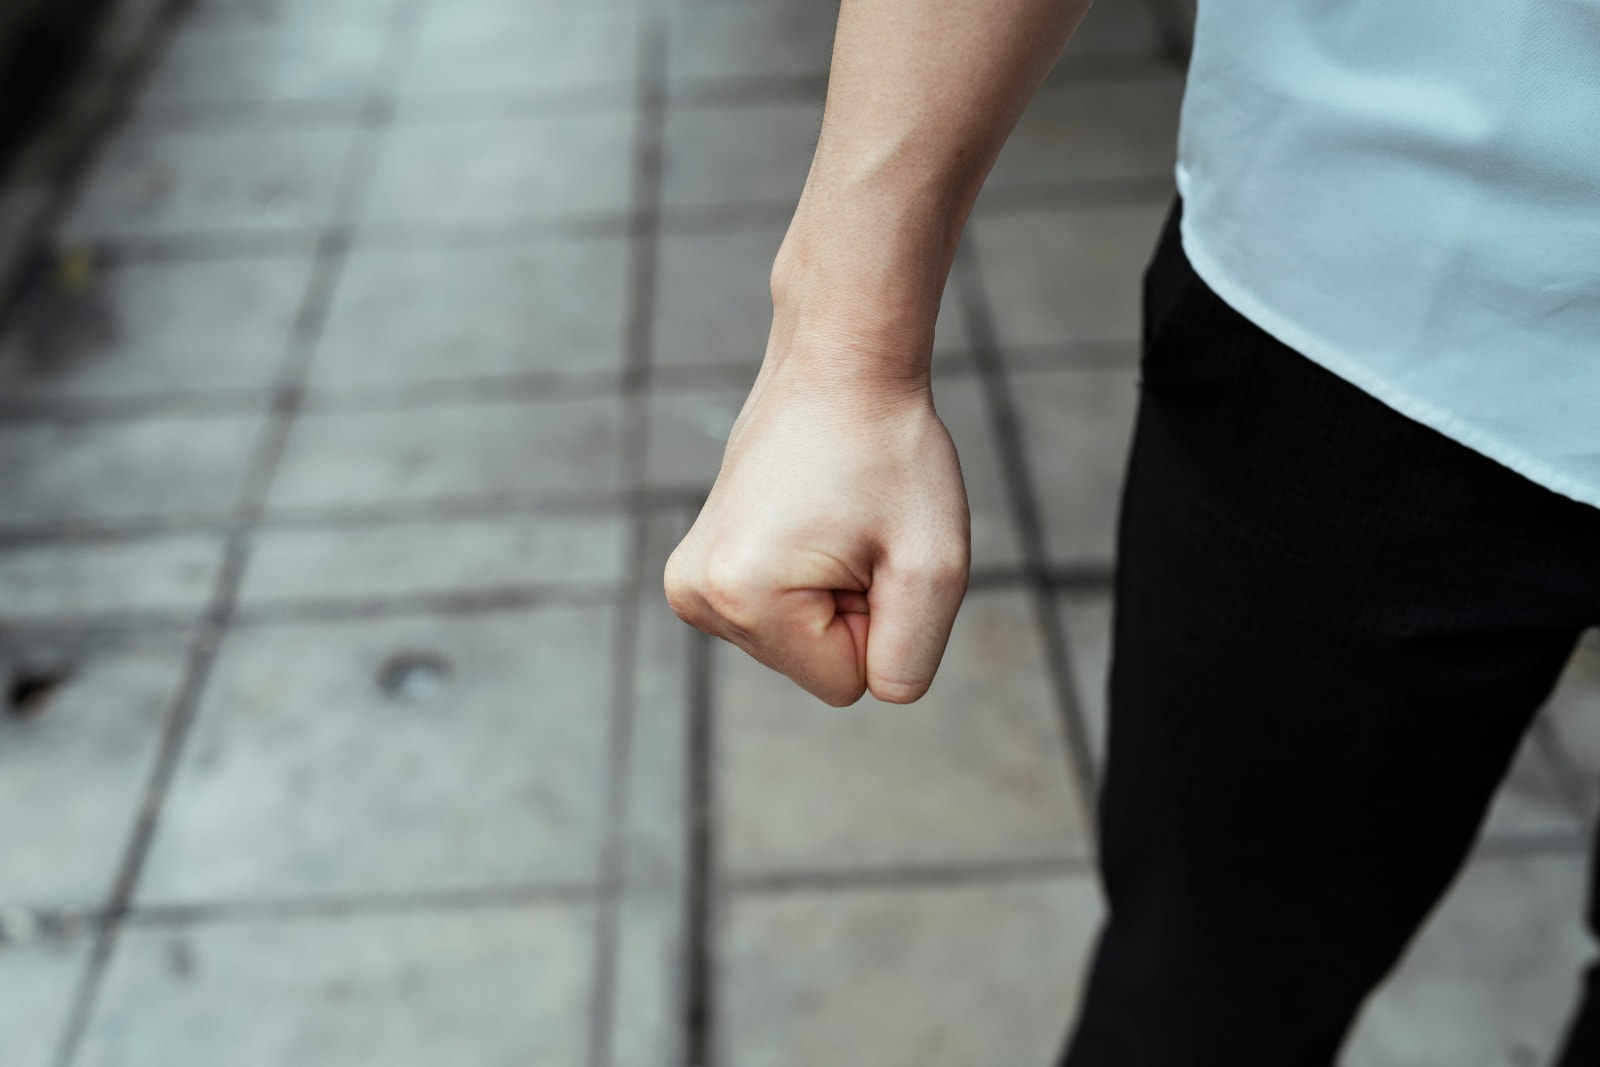 the man who clenched his fist